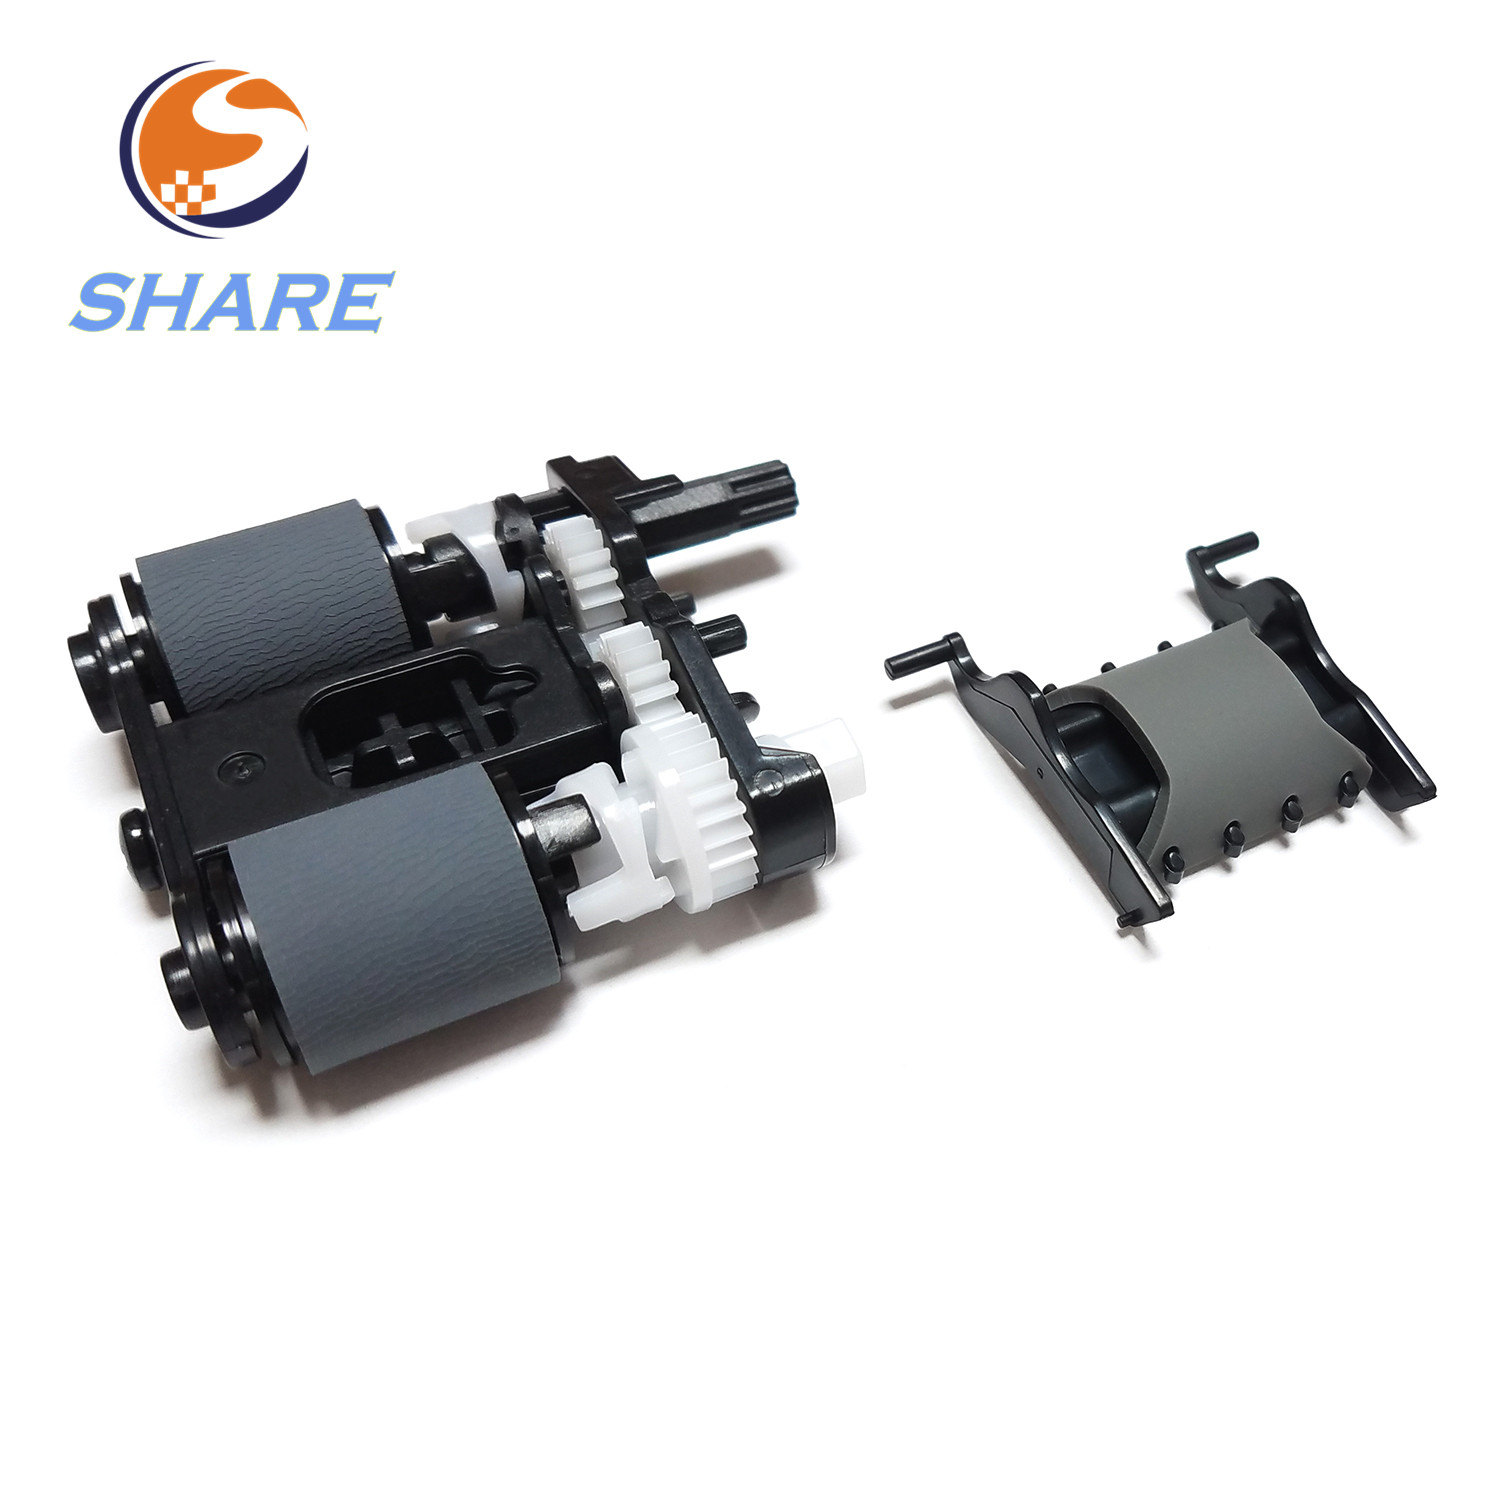 1 SET NEW ADF PICKUP roller Separation Pad for HP Color LJ MFP M377 M477fdn M477fdw M477fnw M426 M281 B3Q10-60105 B3Q10-40080(China)